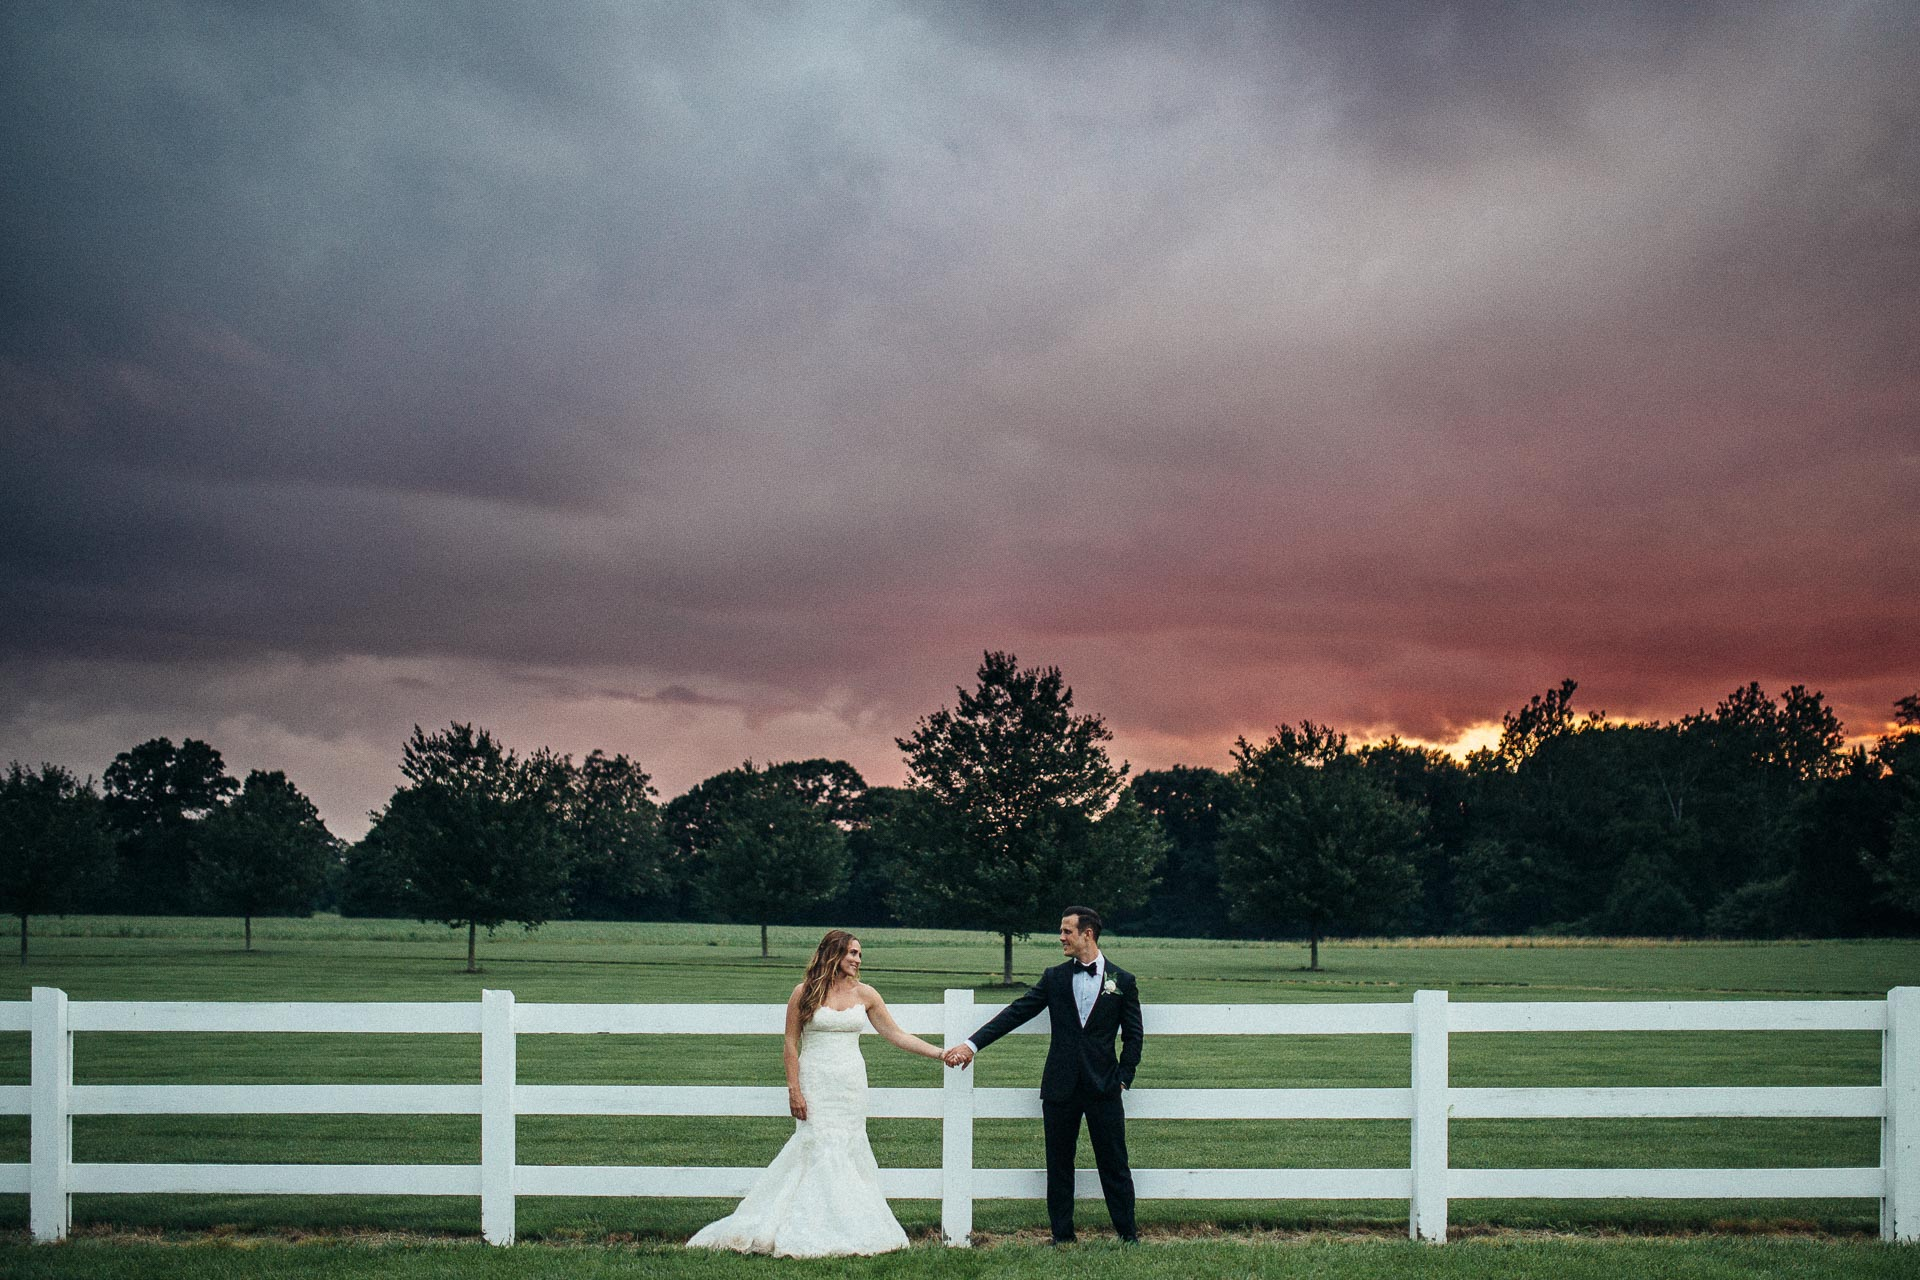 Shawna_Josh_Wedding_Easton_Maryland_JeanLaurentGaudy_119